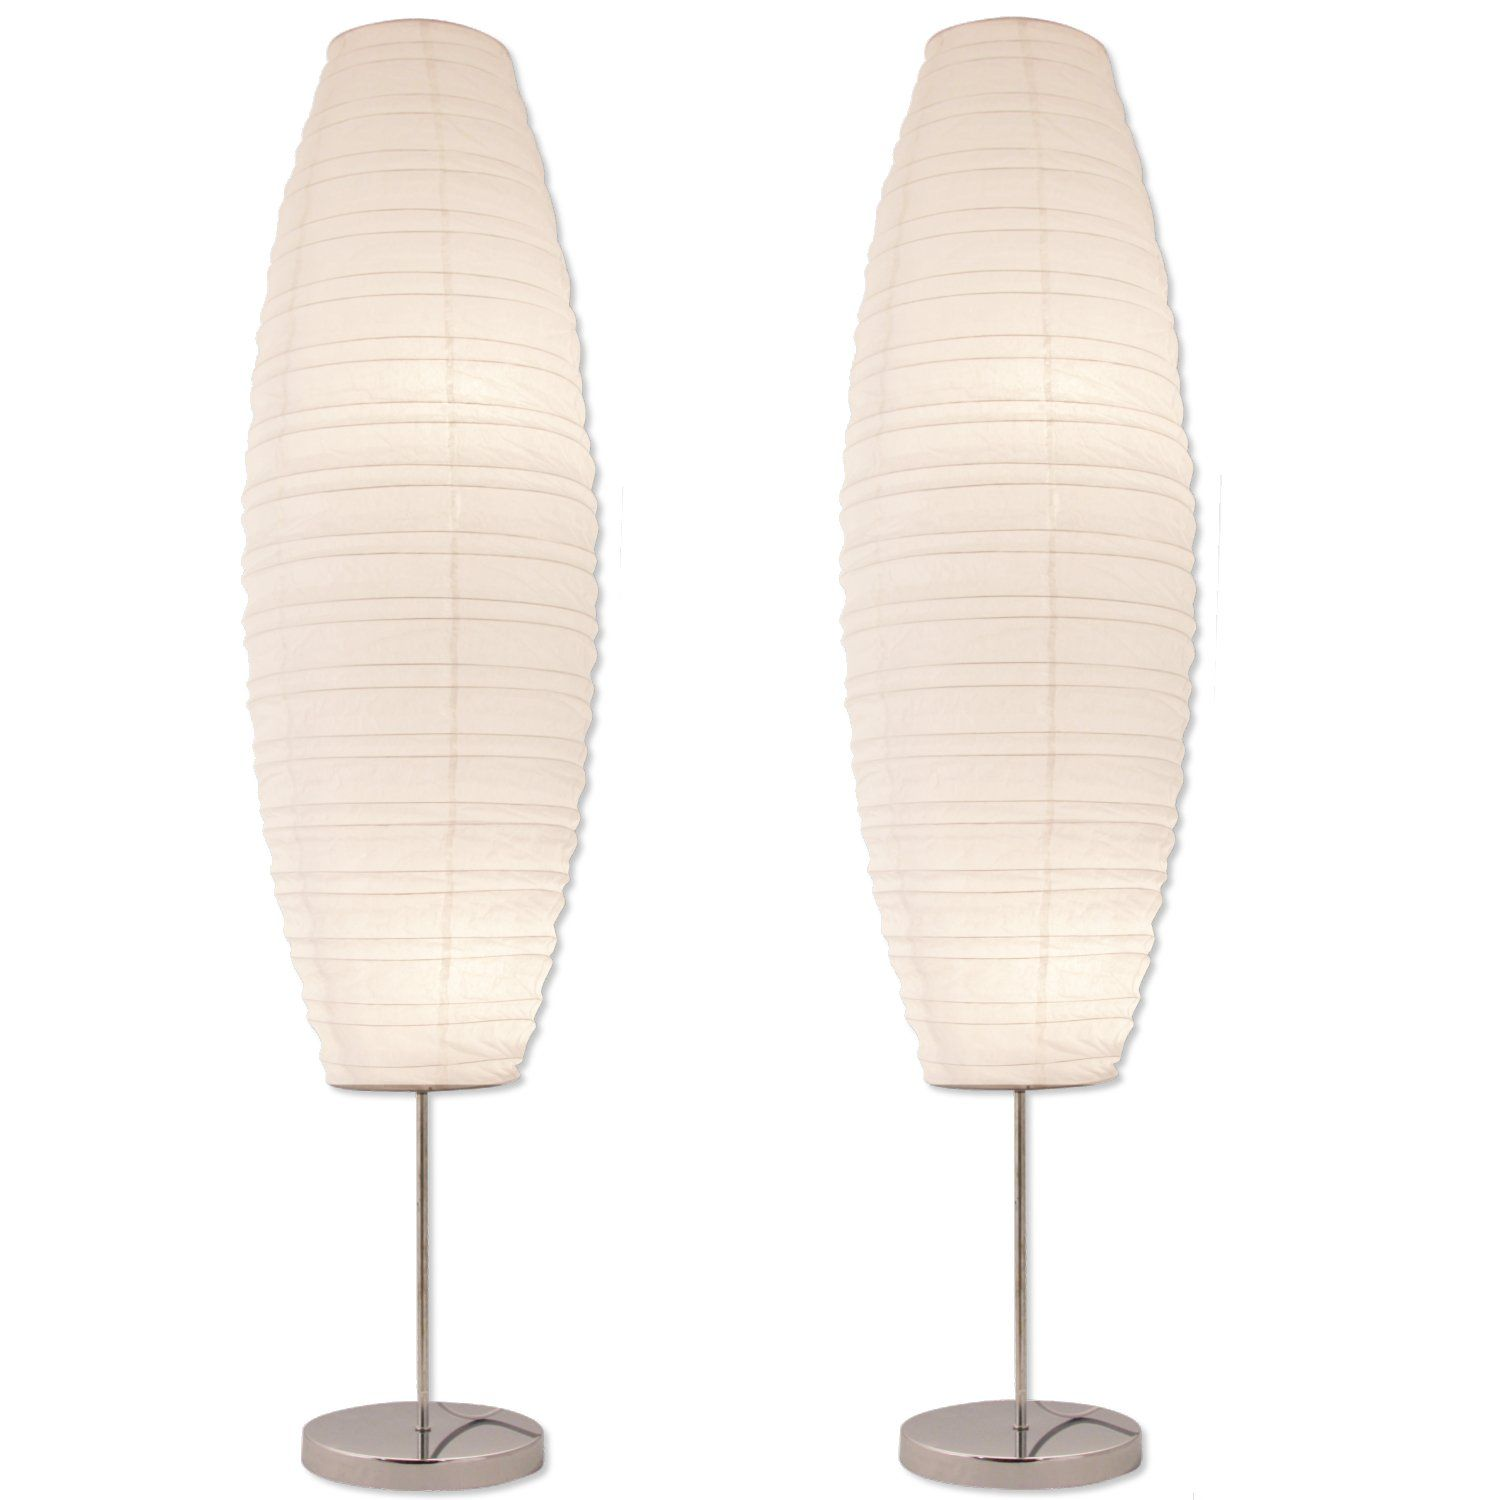 Diploma floor lamp with paper shade japanese style model